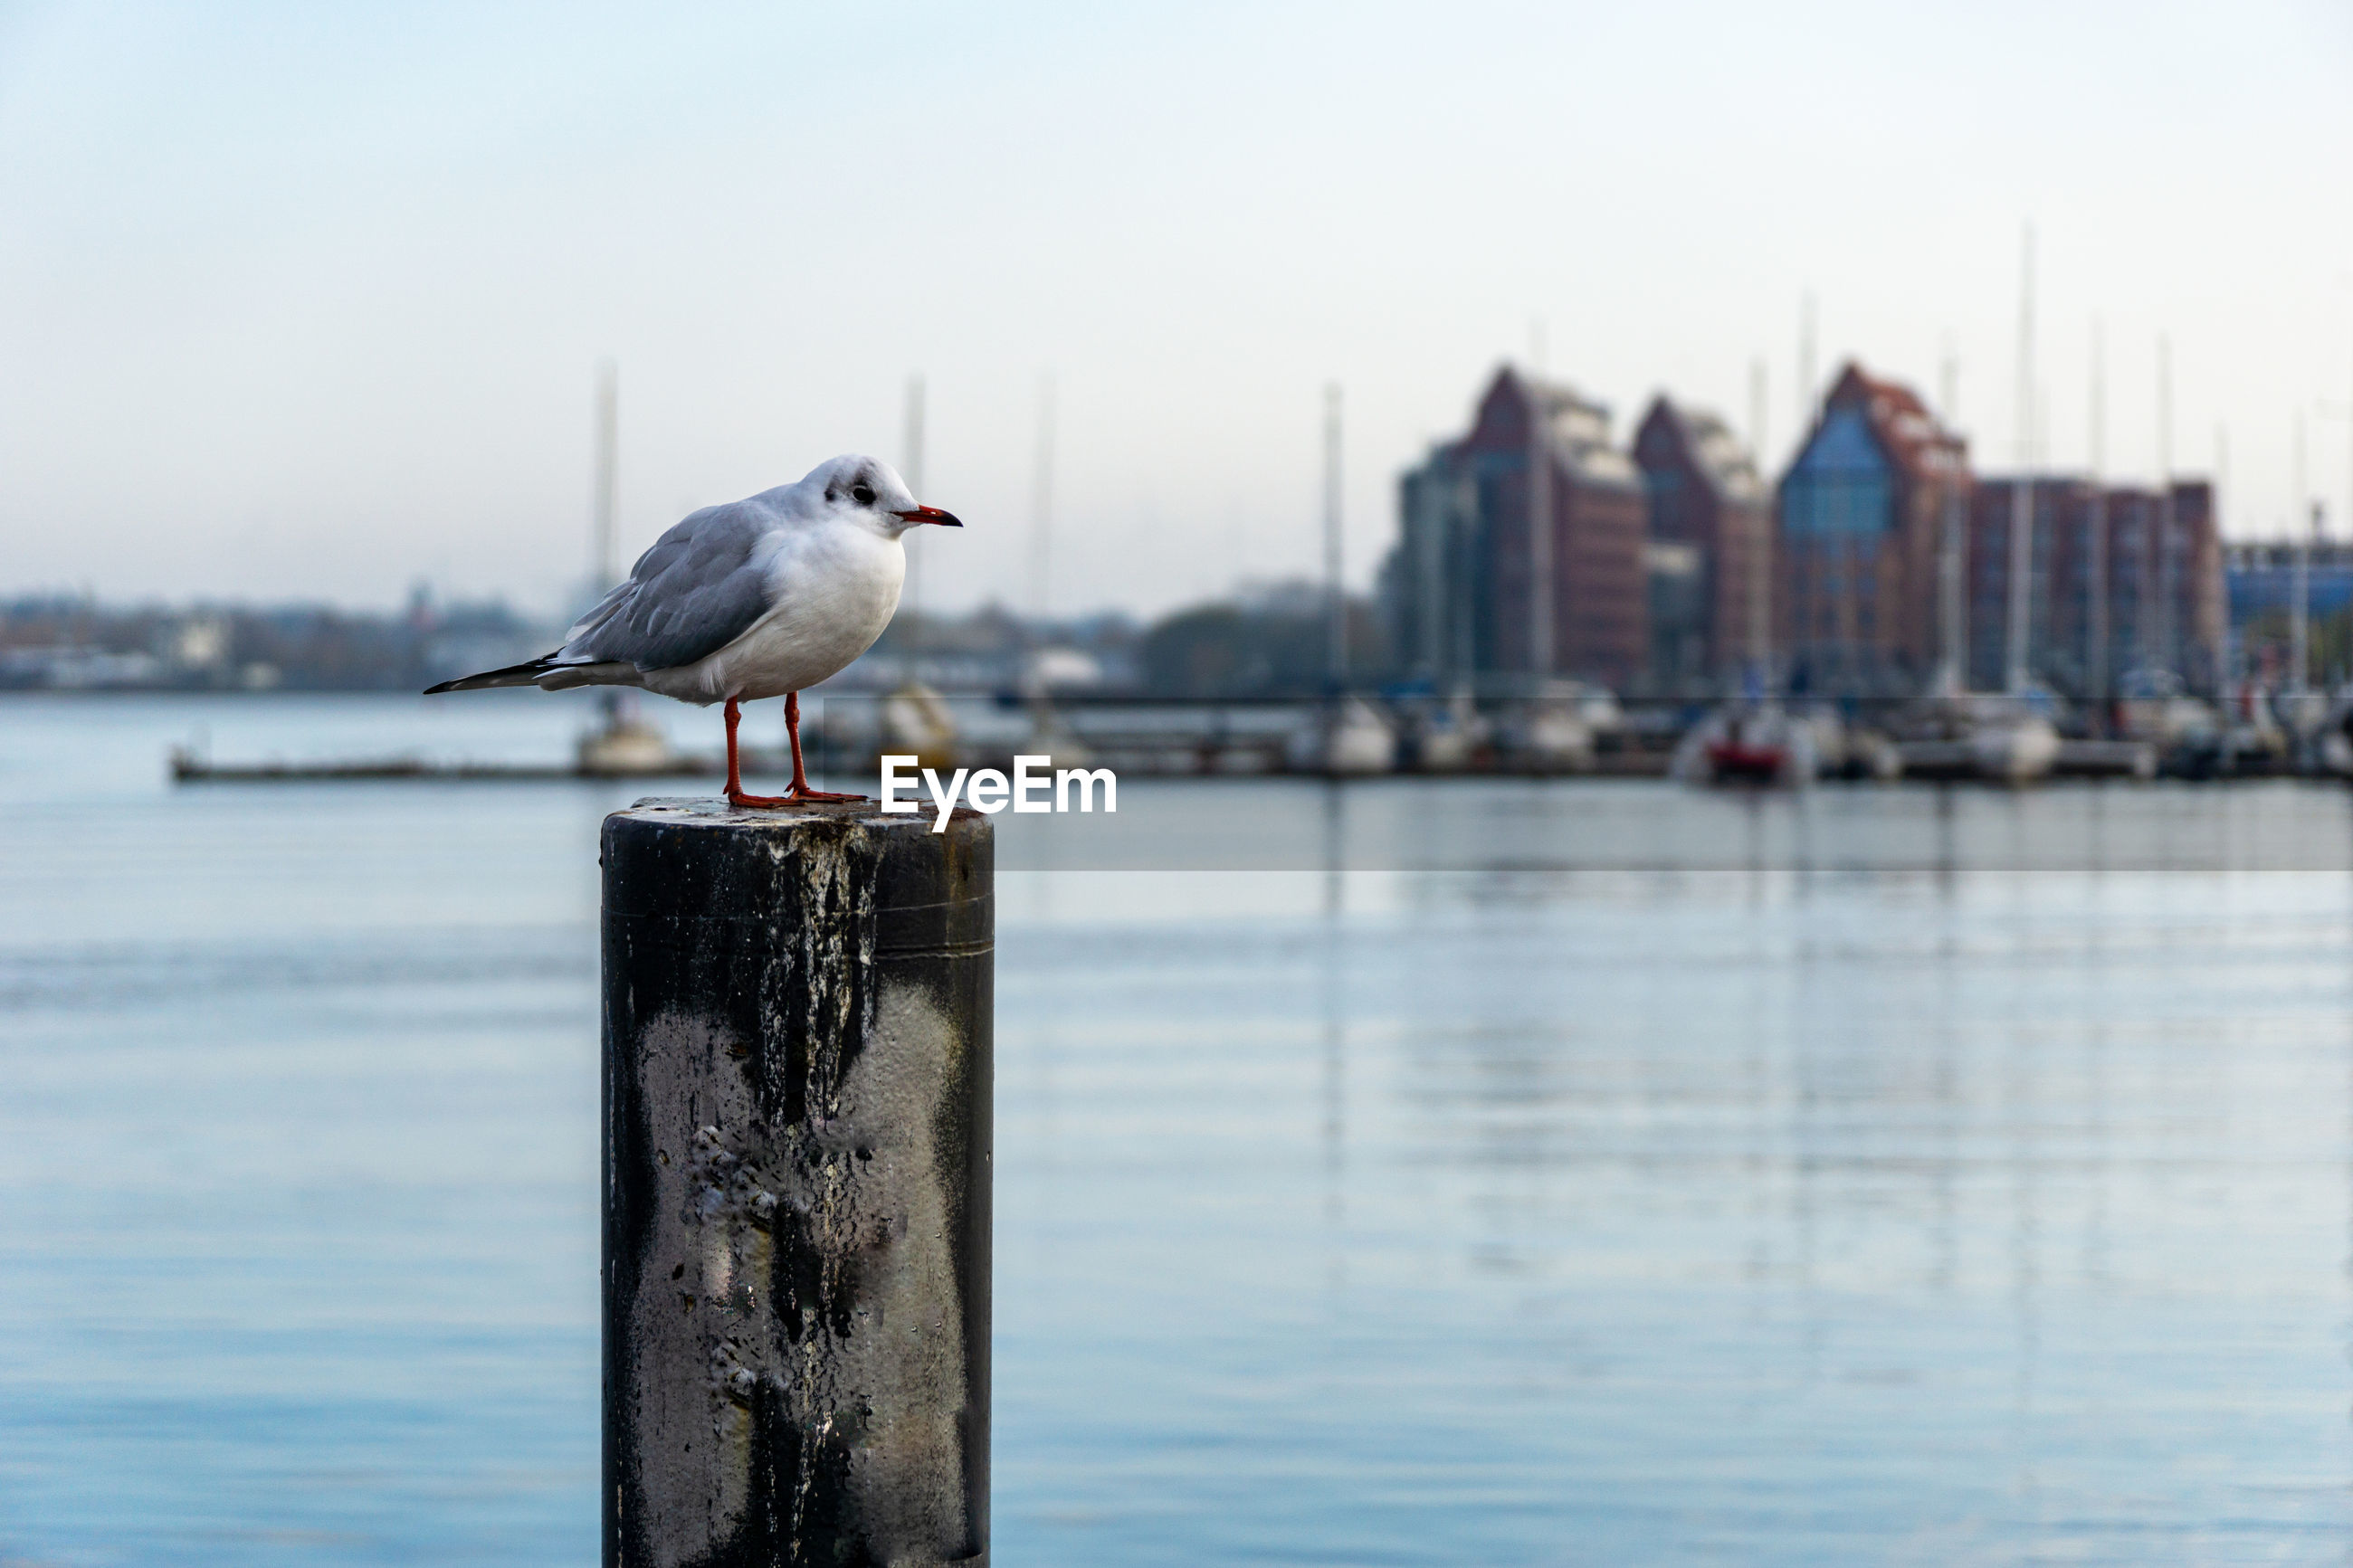 SEAGULL PERCHING ON A WOODEN POST